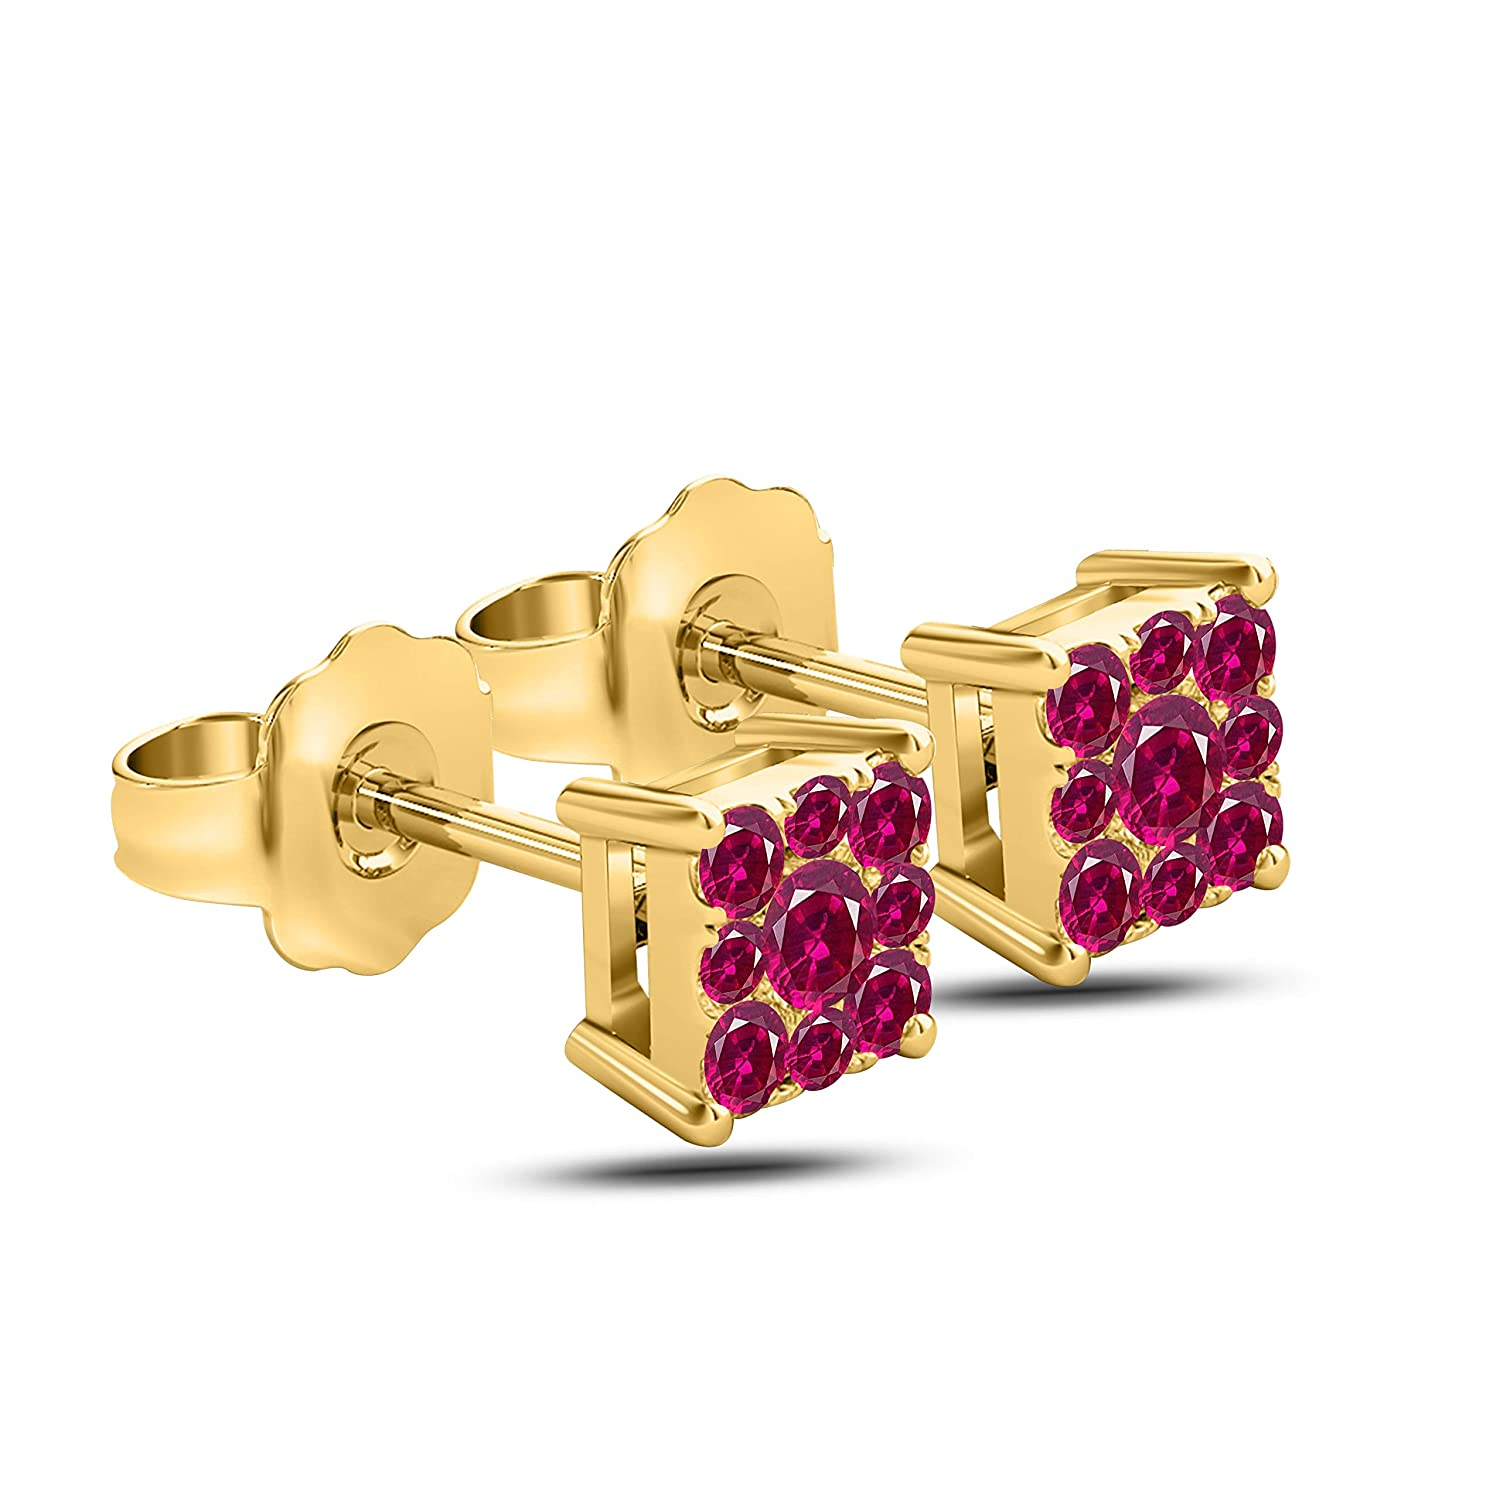 Gems and Jewels Plated Alloy Alloy 14k Yellow Gold Plated Alloy 1.00 Ct Round Cut Ruby Stud Earrings For Girls and Womens